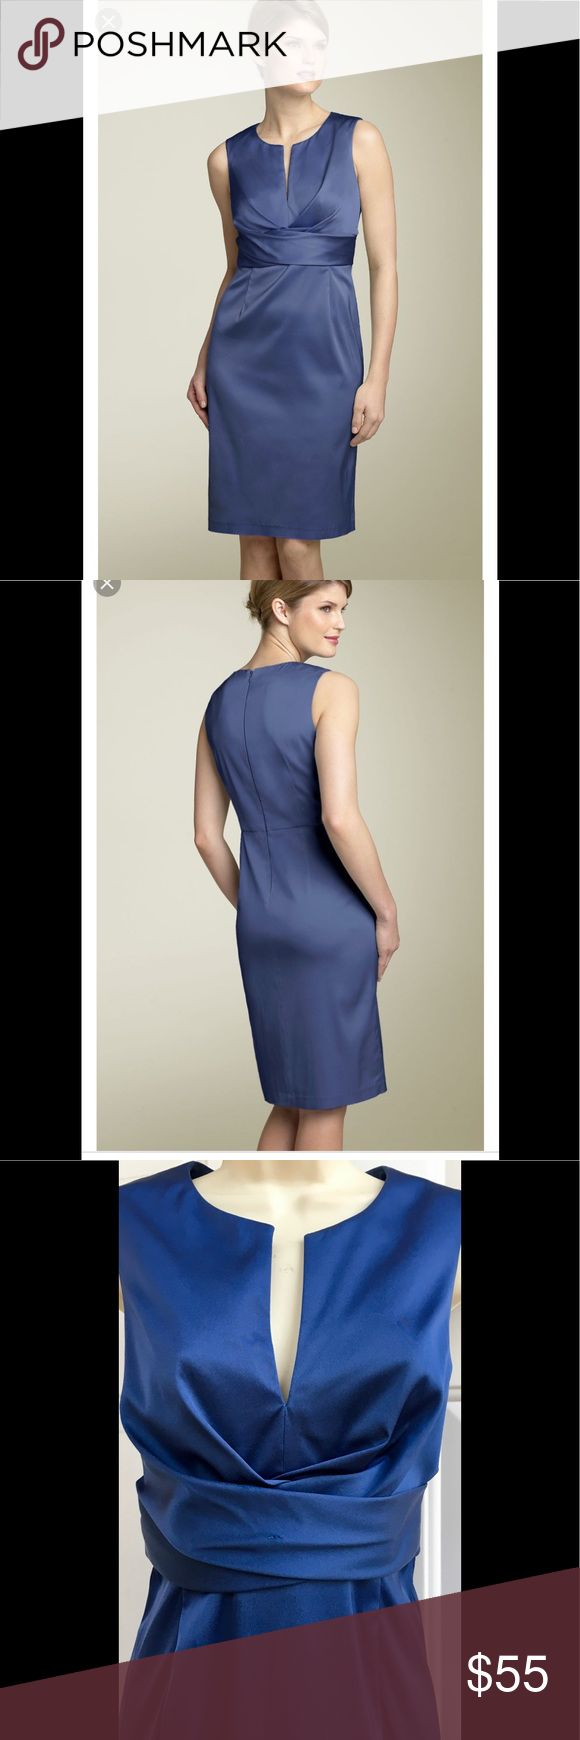 Donna Ricco Blue Satin Split Neck Sheath Dress 6 Donna Ricco. Blue Satin Split Neck Sheath Dress. Artfully crisscrossed waist accents the front of an elegant dress cut from stretch satin. Finished with a split neck and darted skirt for a slimming silhouette. Back zip with hook. Size 6. Donna Ricco Dresses